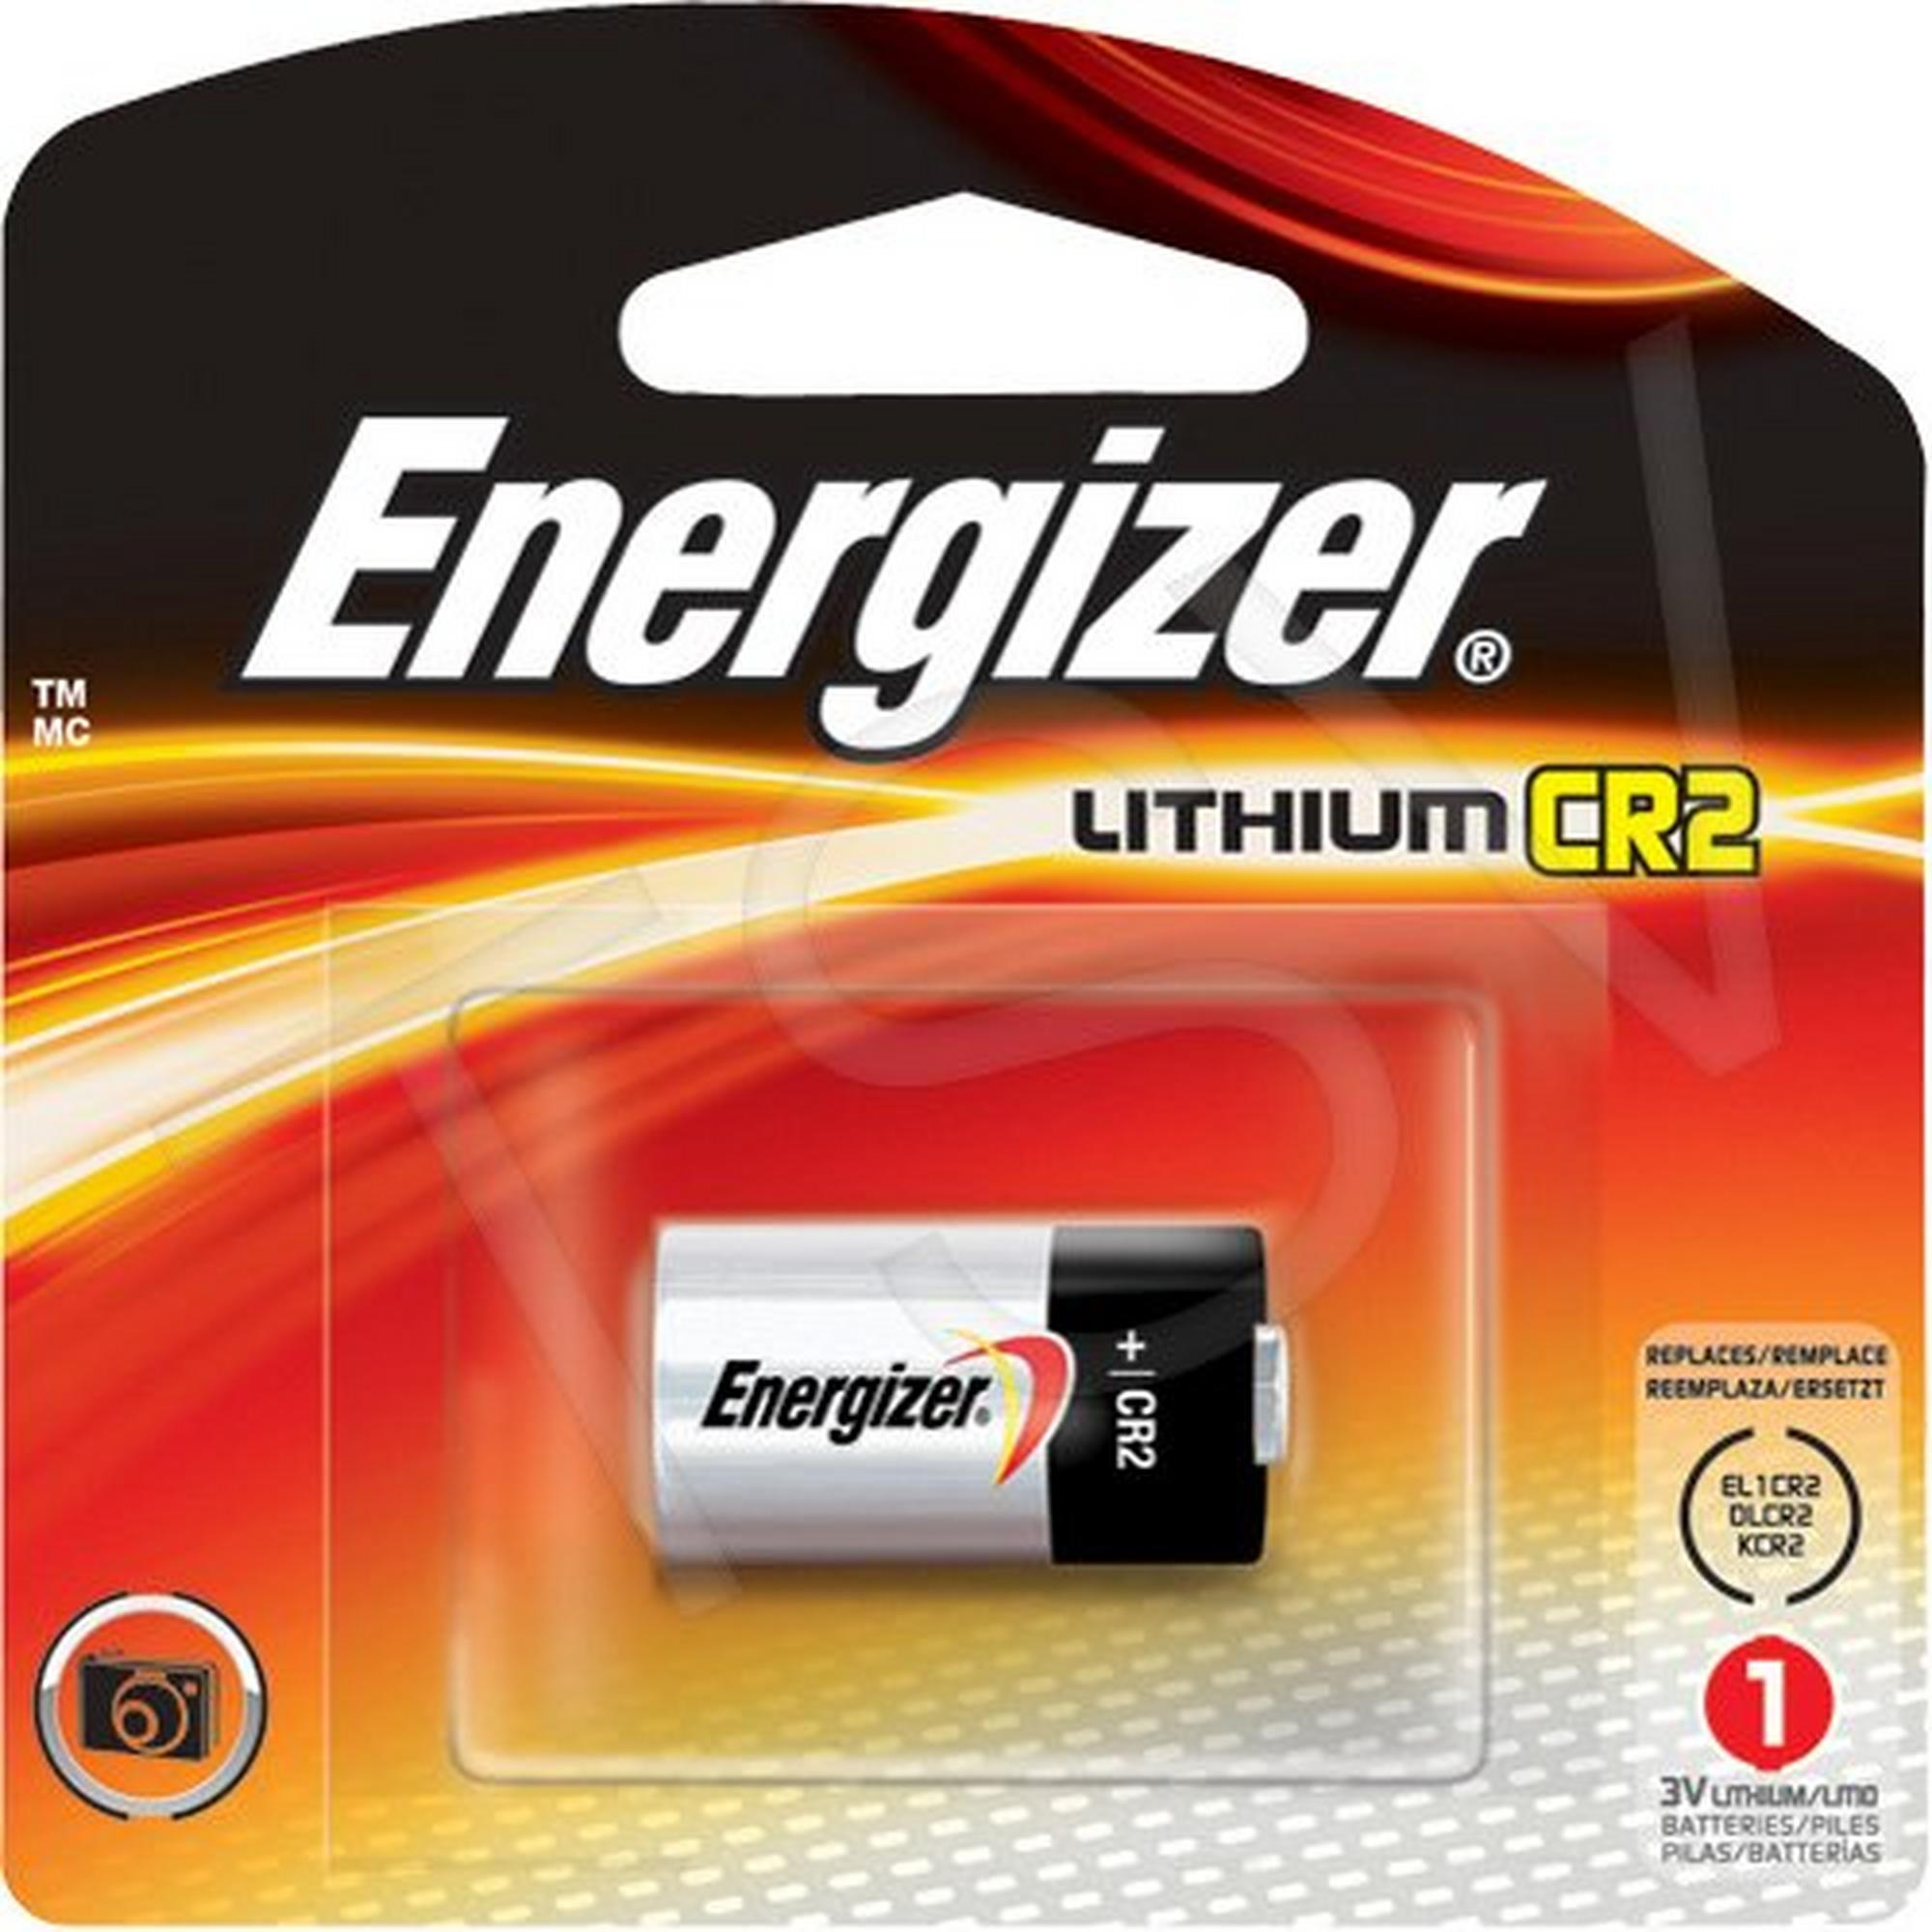 Energizer Battery 1 Pack